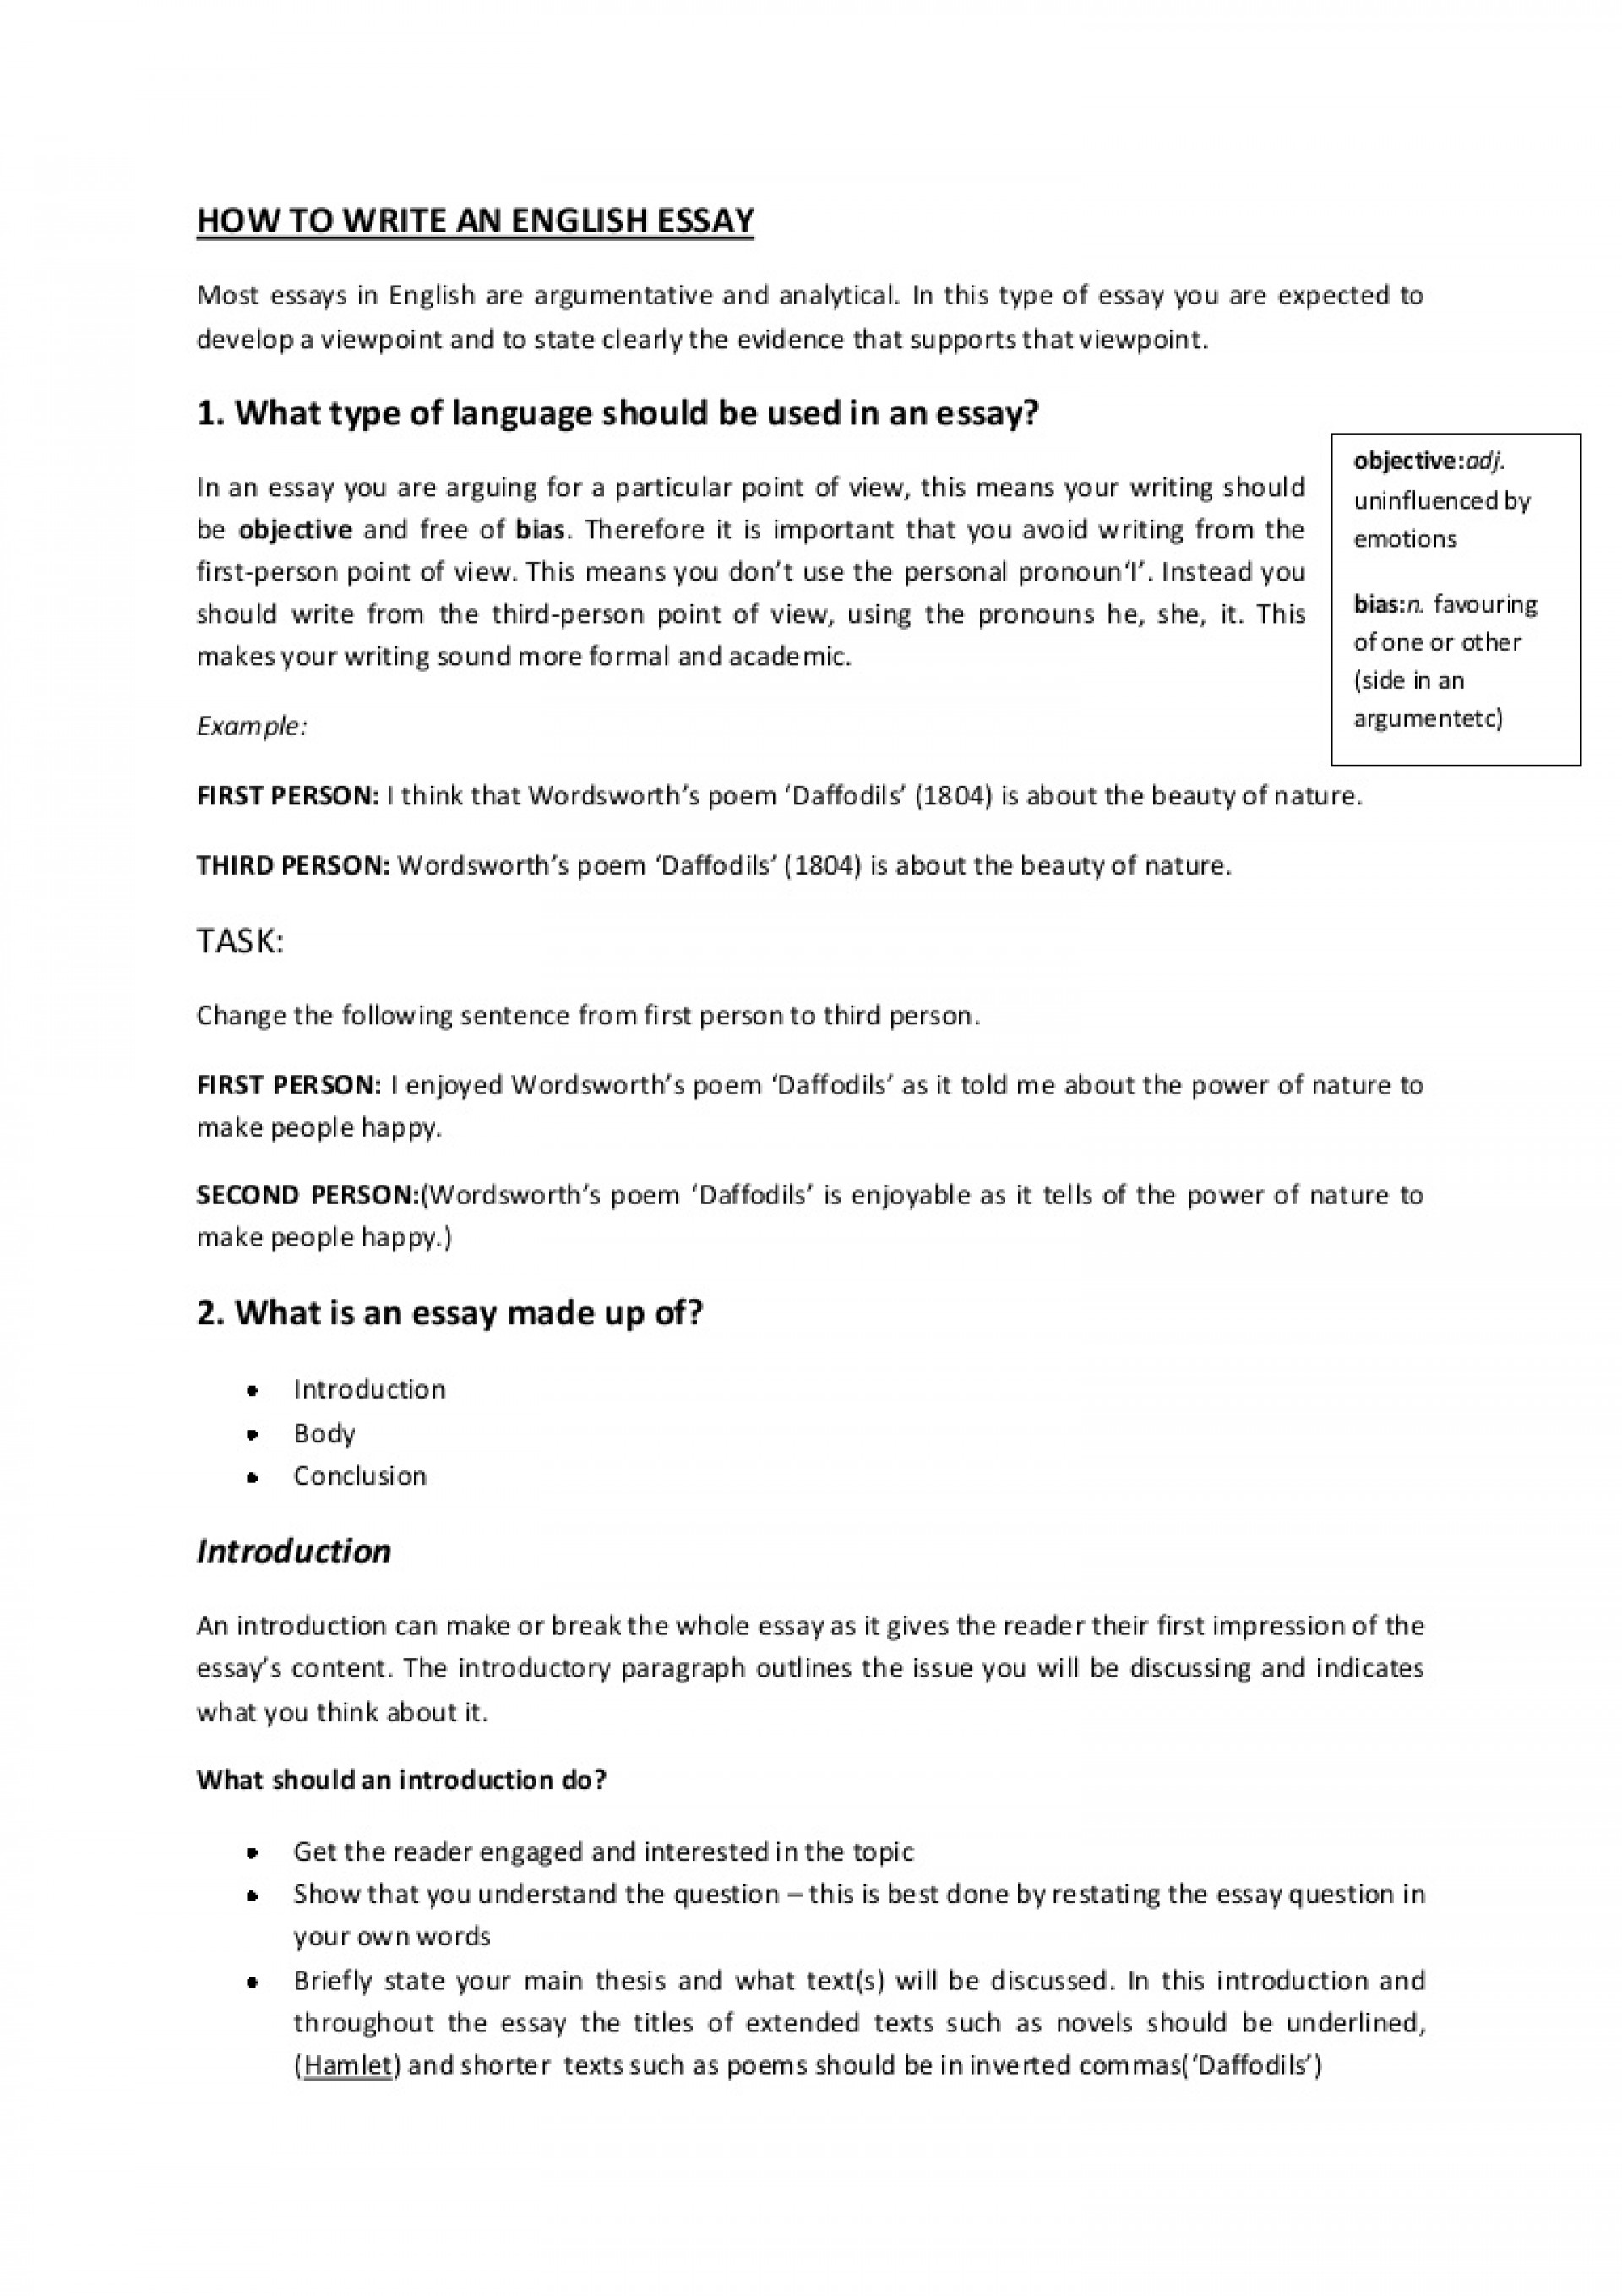 013 Howtowriteanenglishessaybooklet Phpapp01 Thumbnail How To Write Essay Awful Ab An In 3 Hours Introduction Body And Conclusion 2 1920